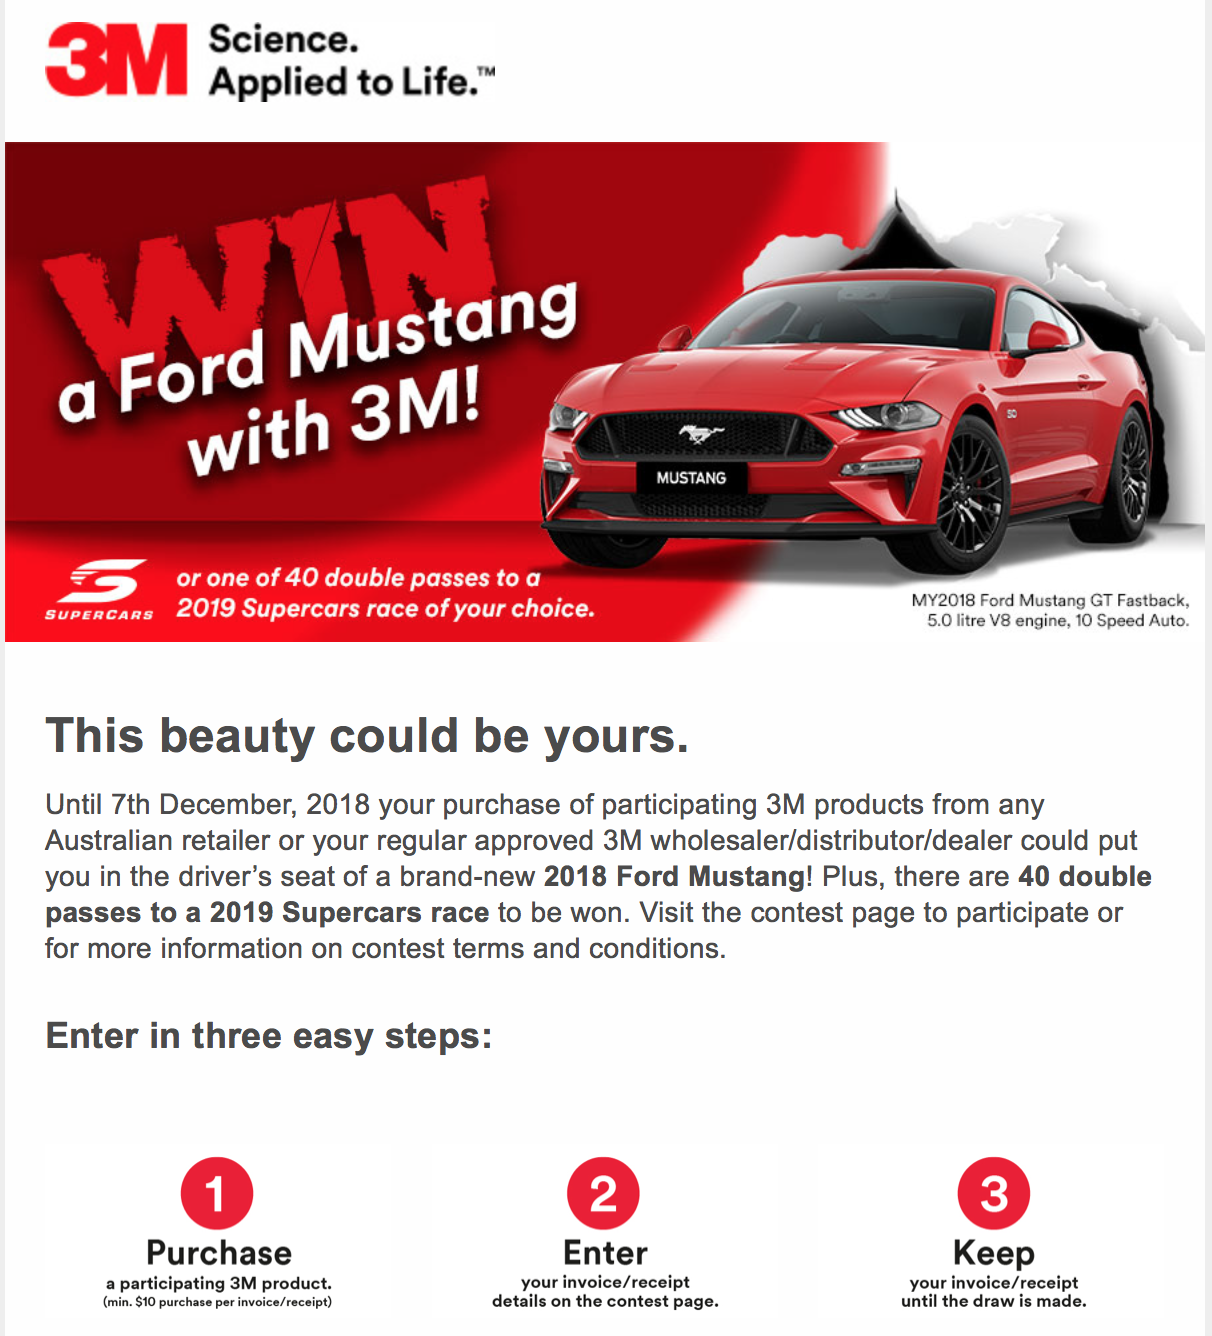 3M promotion helps us sell more stationery